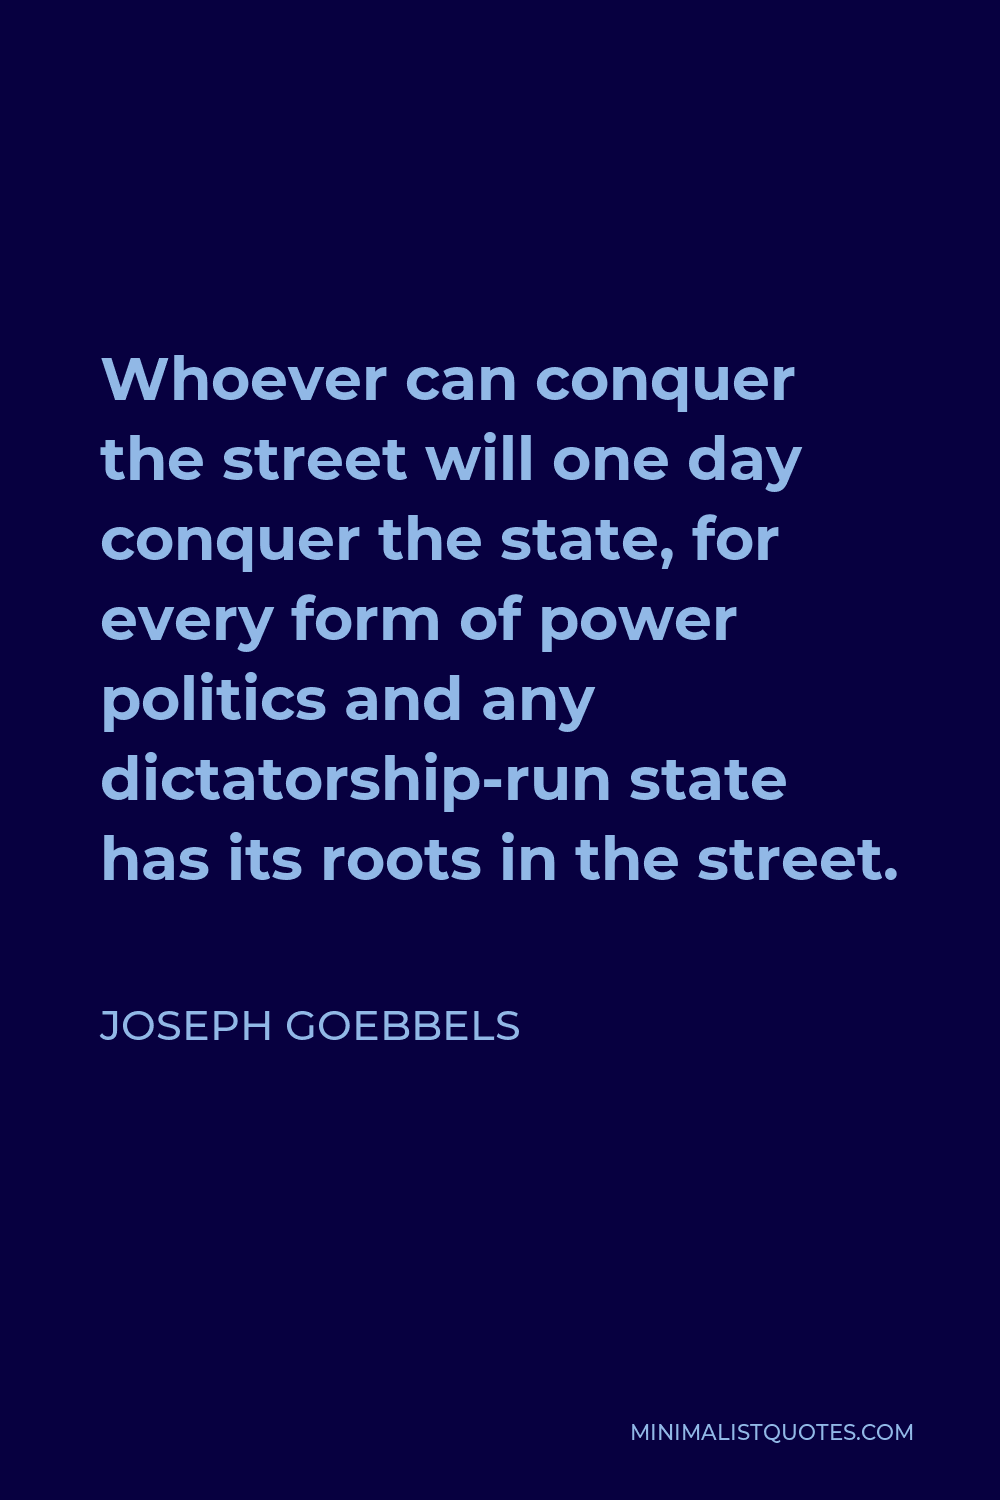 Joseph Goebbels Quote - Whoever can conquer the street will one day conquer the state, for every form of power politics and any dictatorship-run state has its roots in the street.